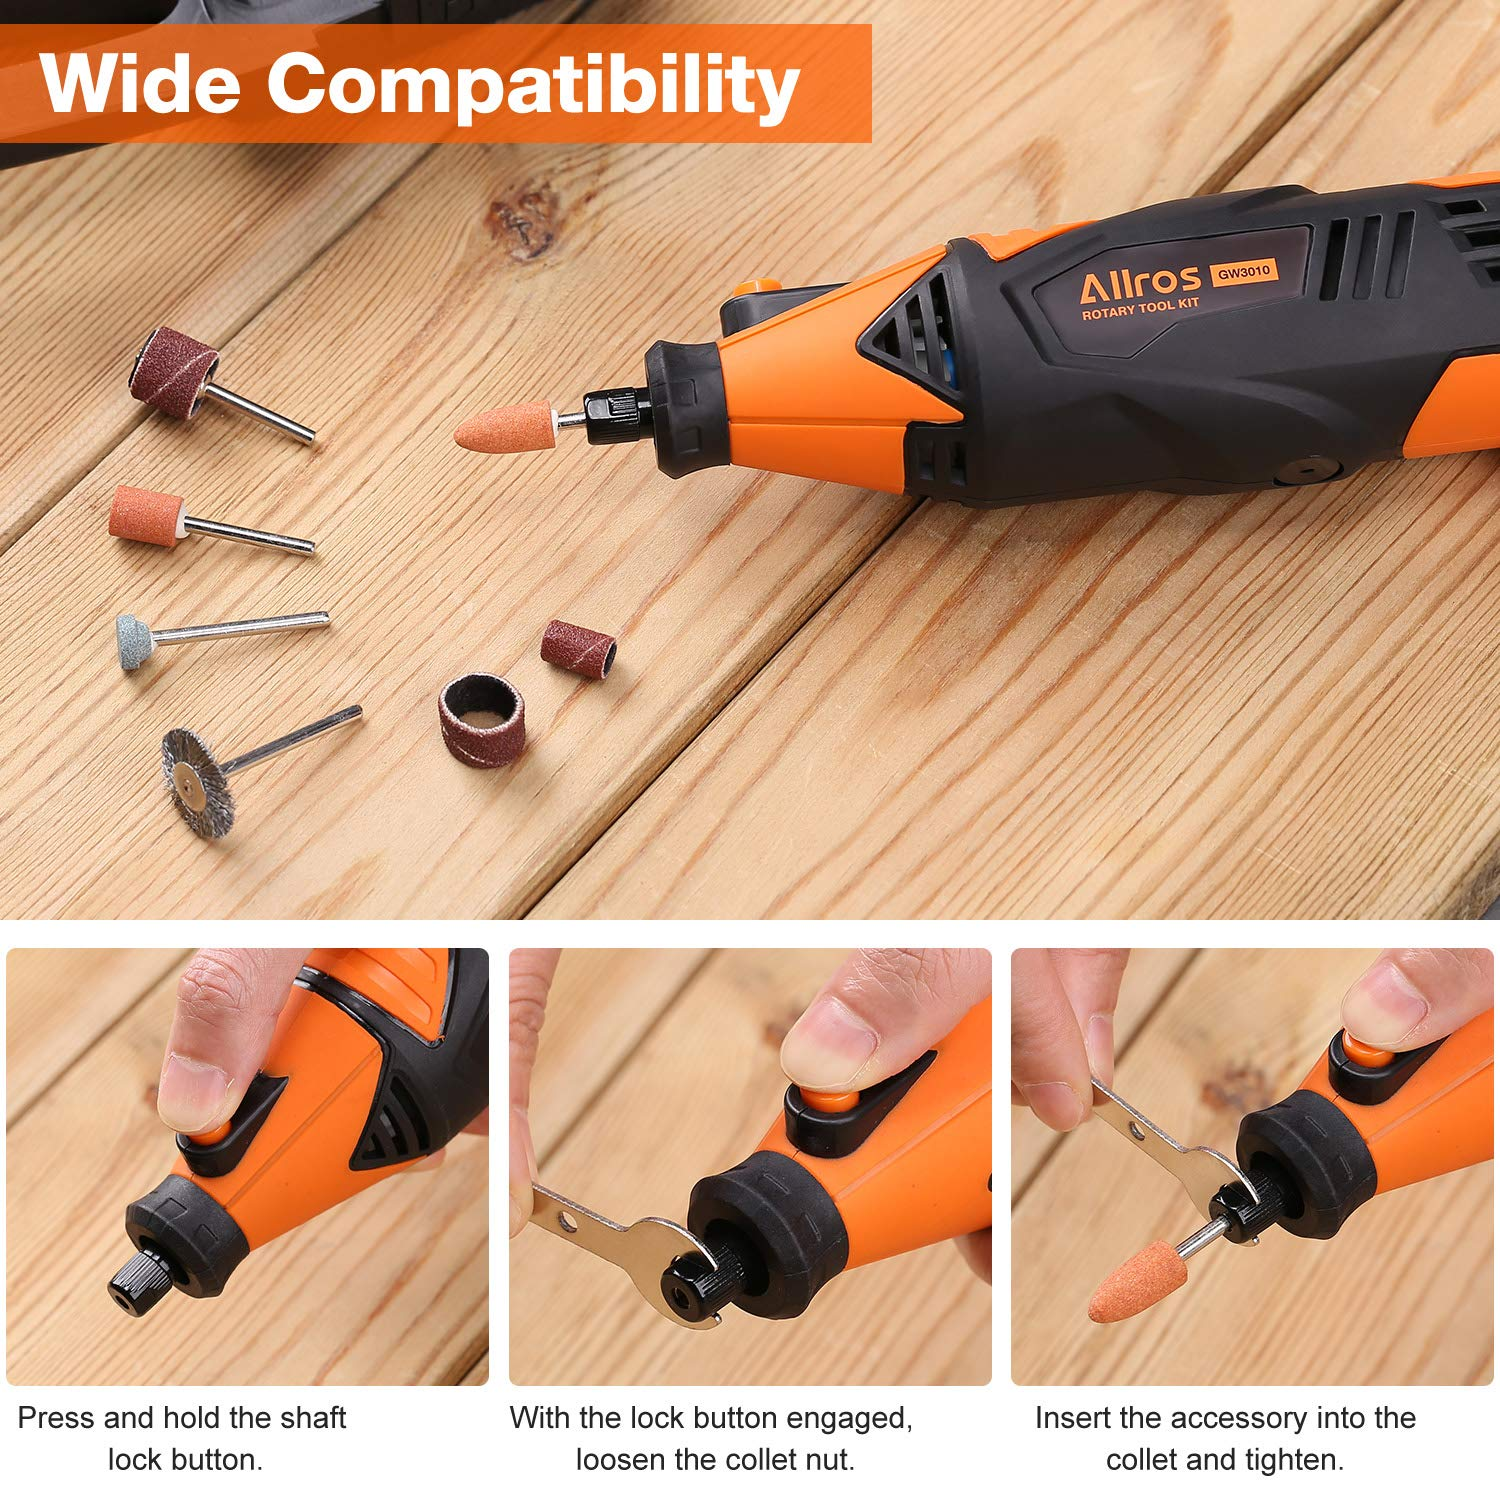 ALLROS 170W Rotary Tool Kit with Flex Shaft Sanding Polishing Drilling Variable Speed Control 8000-35000 RPM 100 Accessories Kit and Storage Case Cutting Ideal Tool for DIY Creations